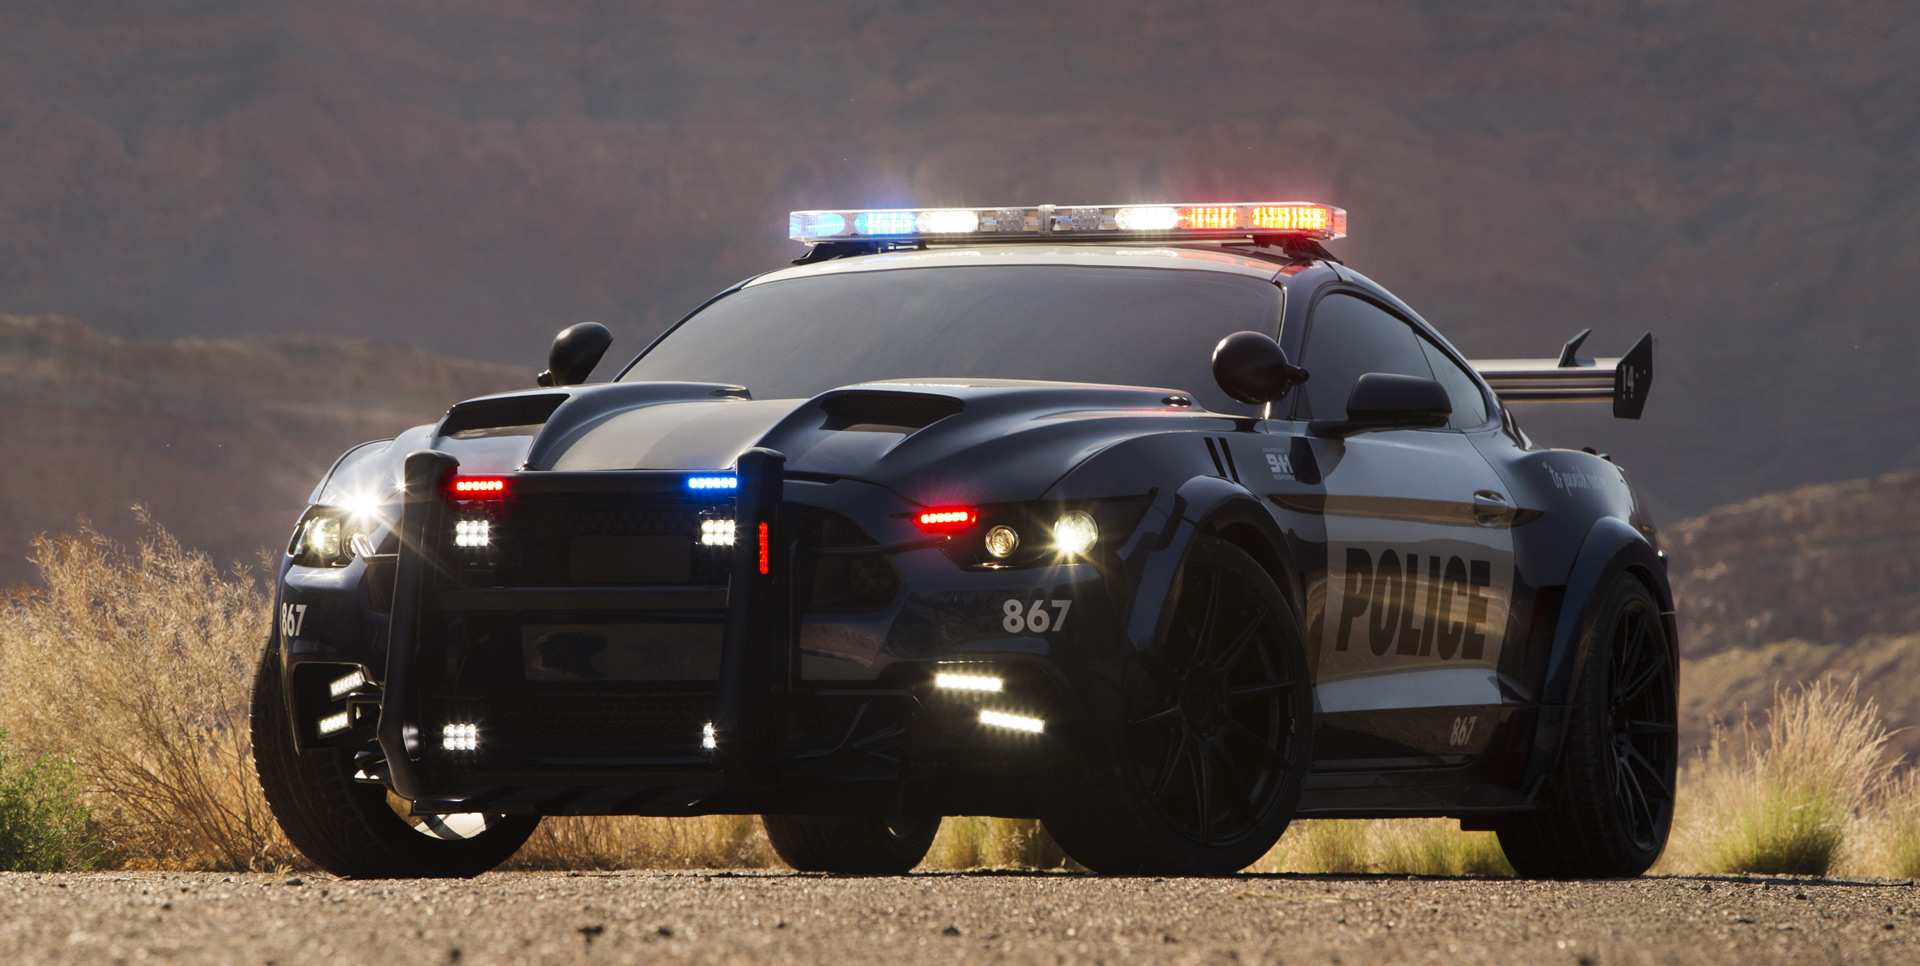 transformers 5s barricade revealed as ford mustang cop car